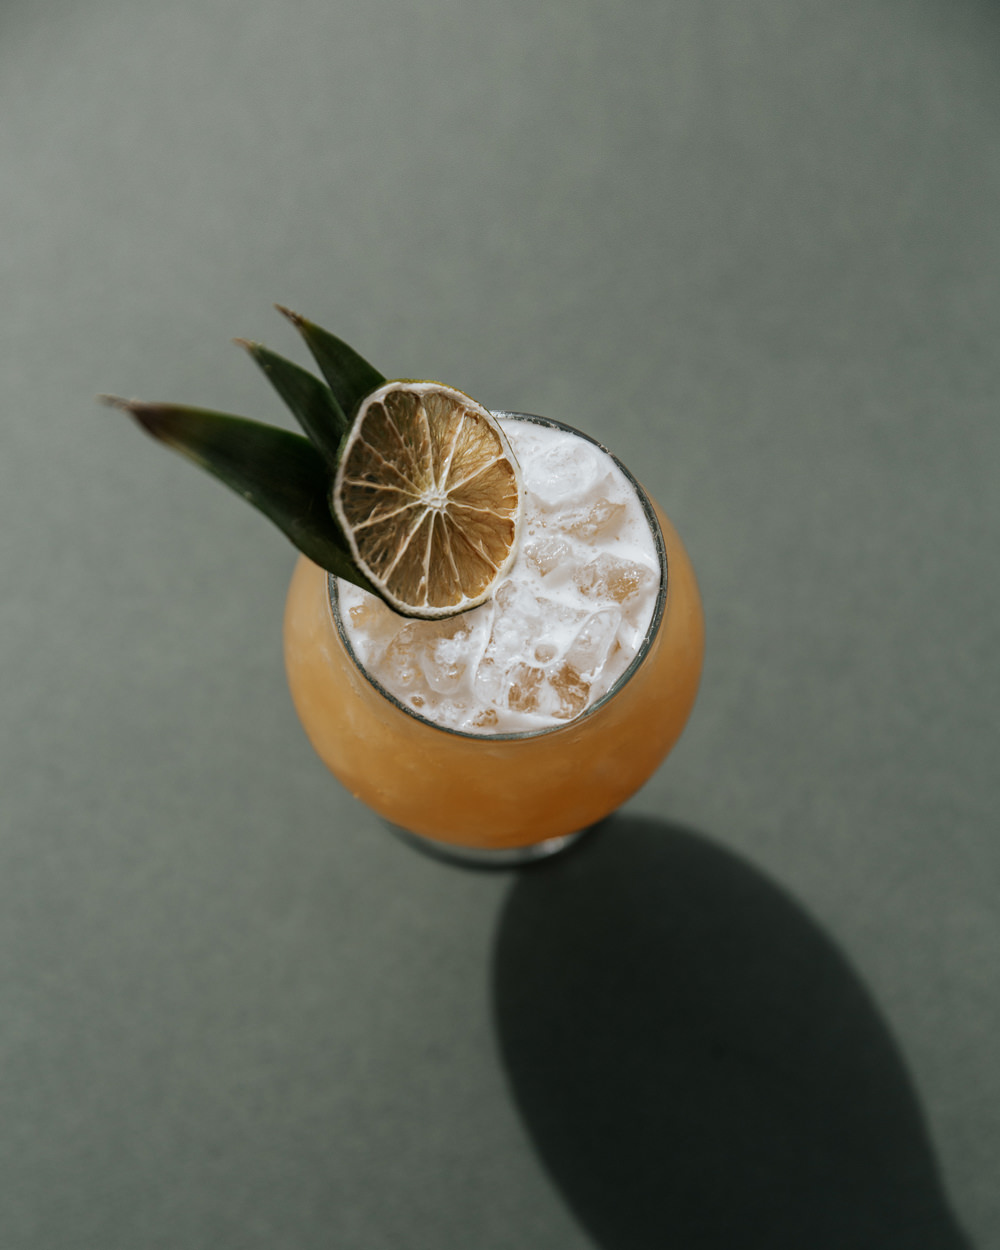 Sarsaparilla - Amen Break - 1 oz Appleton Signature Rum½ oz Plantation OFTD Rum½ oz Gran Classico1 ½ oz pineapple juice¾ oz lime juice½ oz rosehip syrup2 dashes of SarsaparillaCombine all ingredients in cocktail shaker. Shake with ice. Strain into chilled Tulip glass over crushed ice. Garnish with a lime wheel and pineapple fronds.